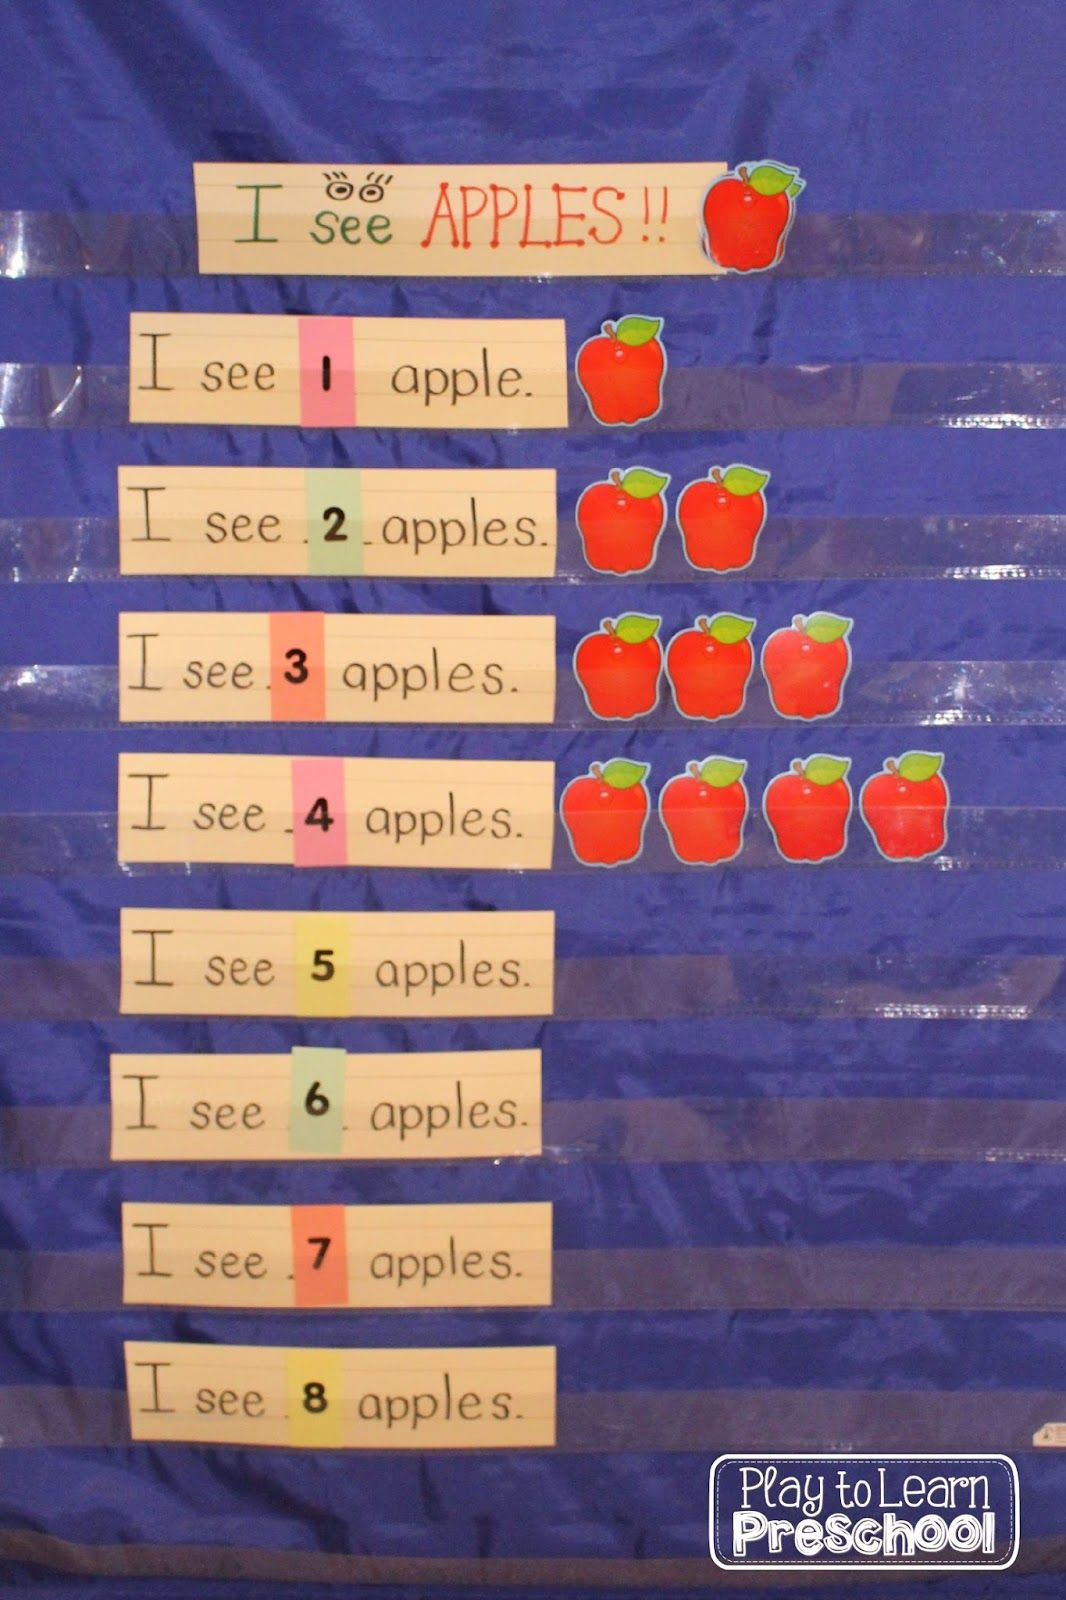 I See Apples